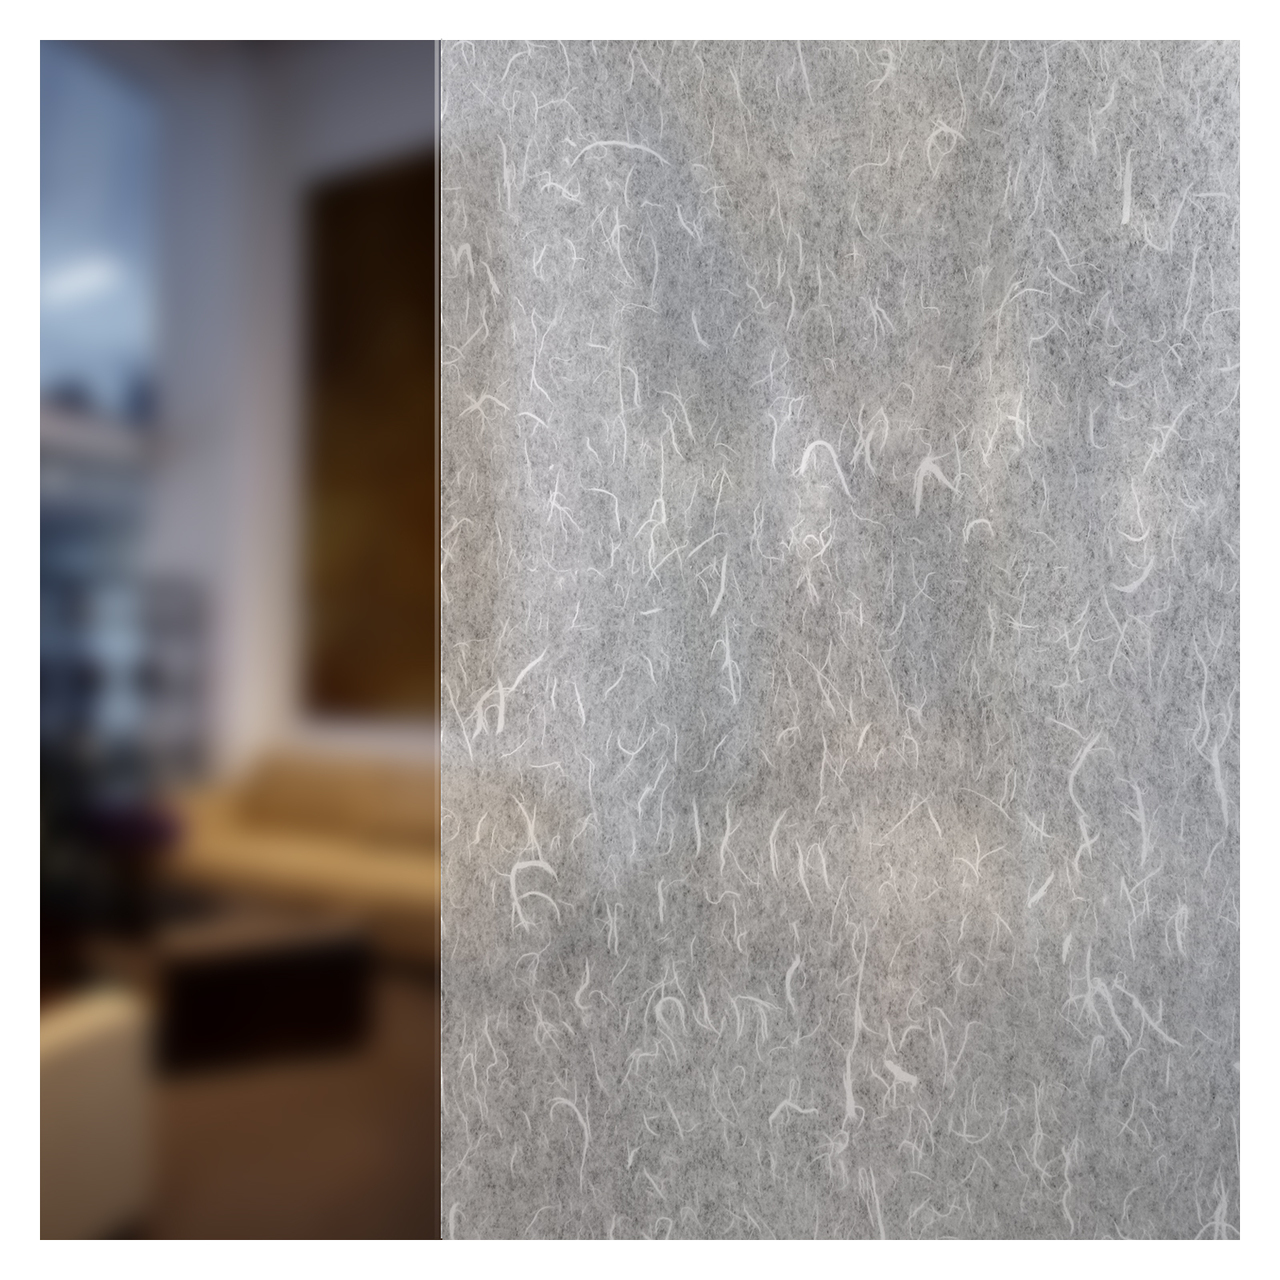 BDF 4RP Rice Paper White Decorative Window Film 36in X 7ft by BuyDecorativeFilm